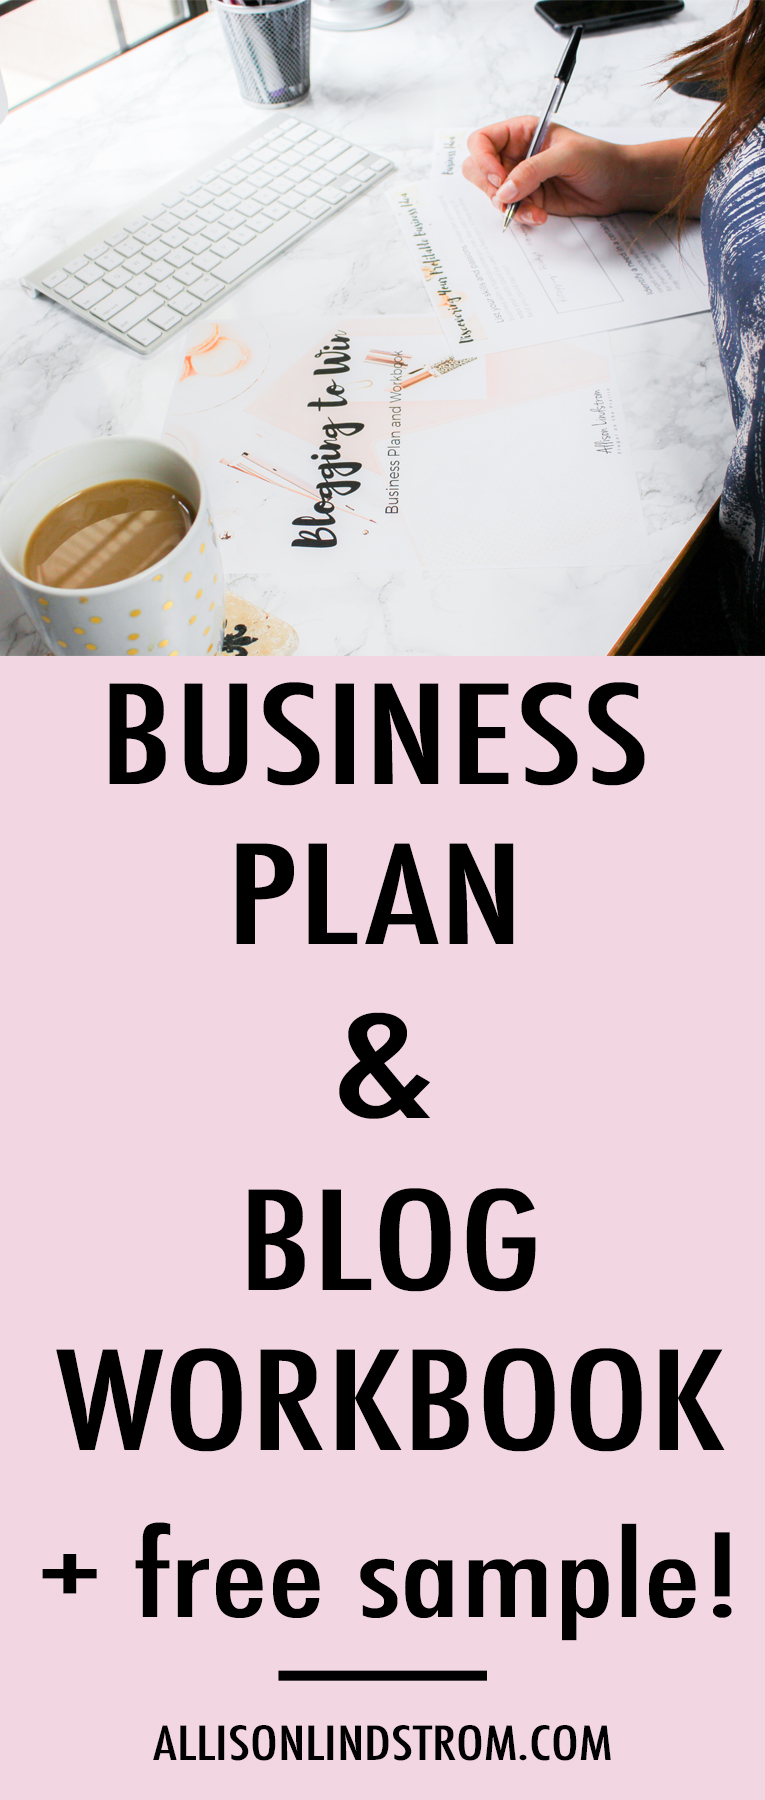 Want to create your blog business plan and organize your strategies? My Blogging to Win Workbook is a 60+ page workbook made just for you! I don't just give you a space to fill in the blanks, I ask you questions and give you prompts to get the ball rolling. Download your free sample now!